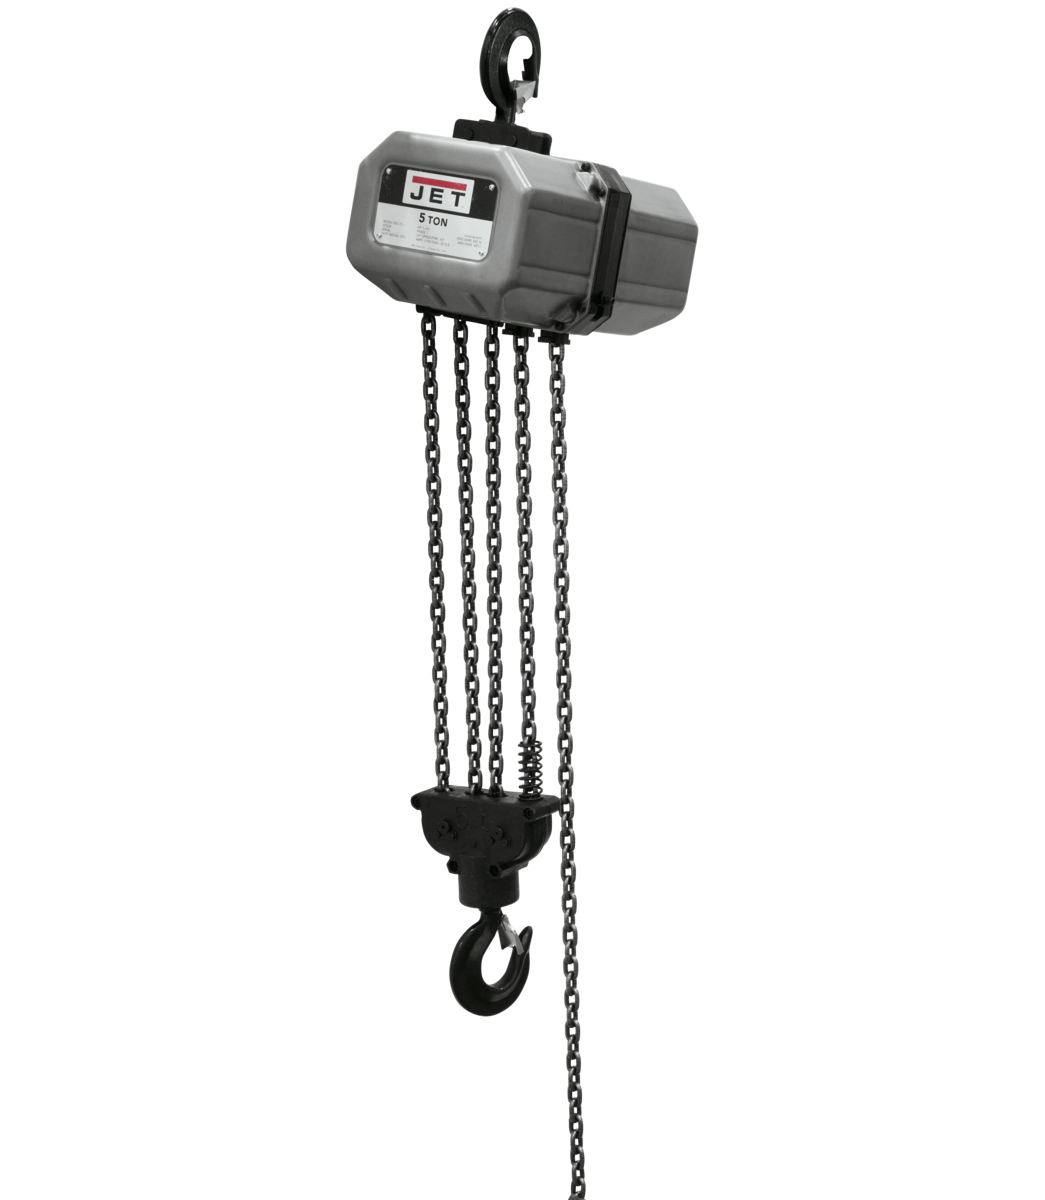 5SS-1C-15, 5-Ton Electric Chain Hoist 1-Phase 15' Lift